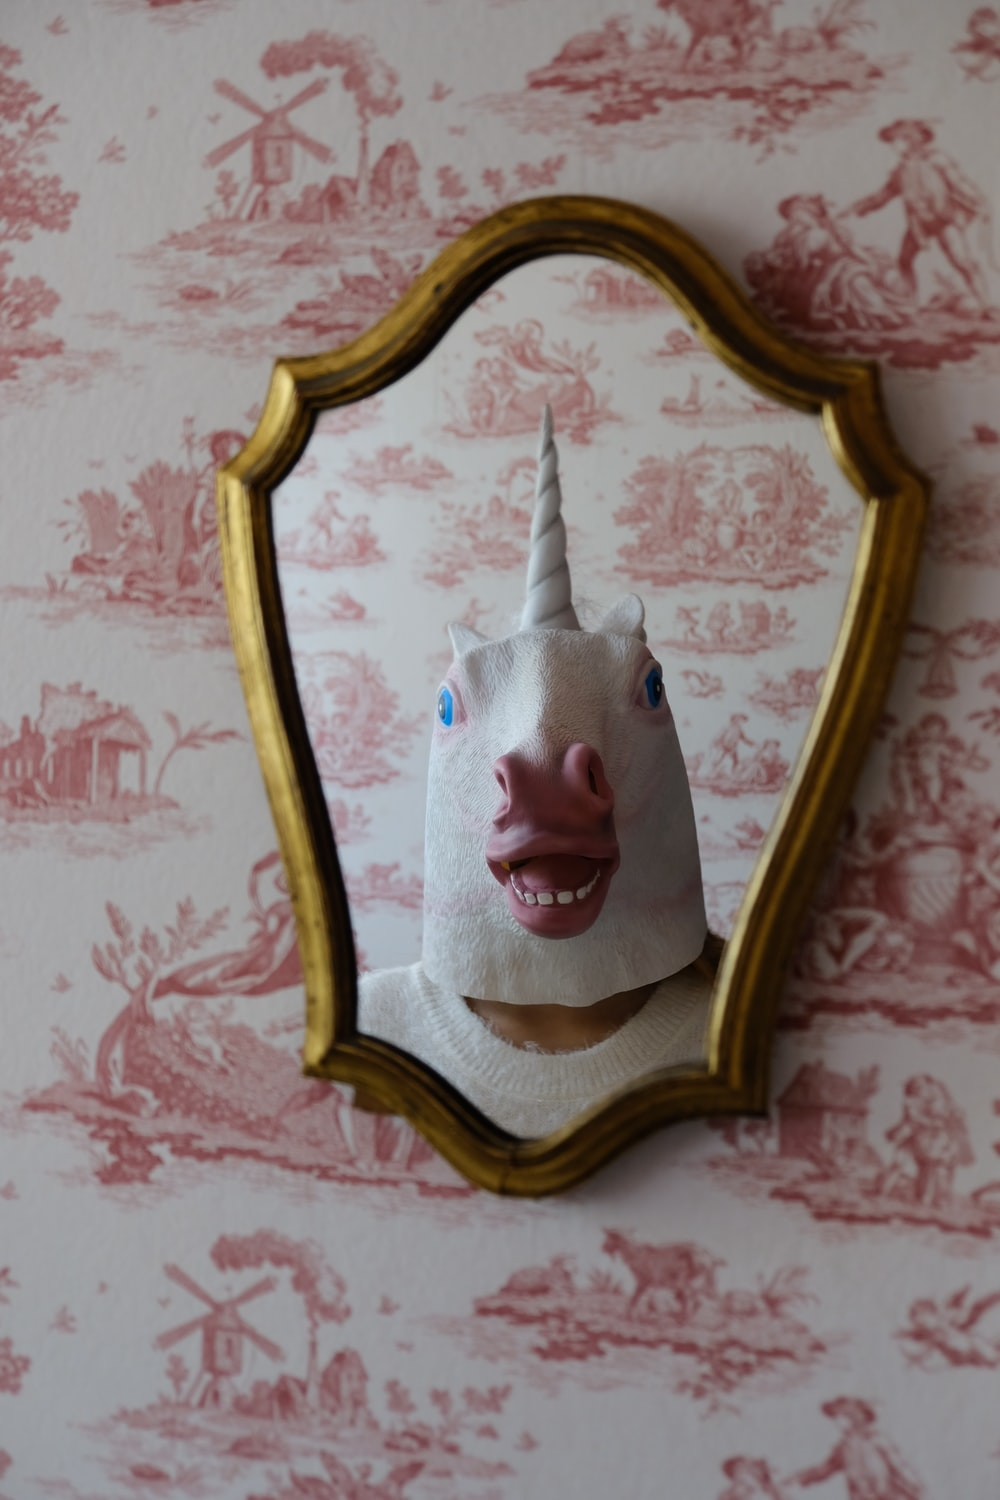 person with white unicorn mask stands in front of wall mirror